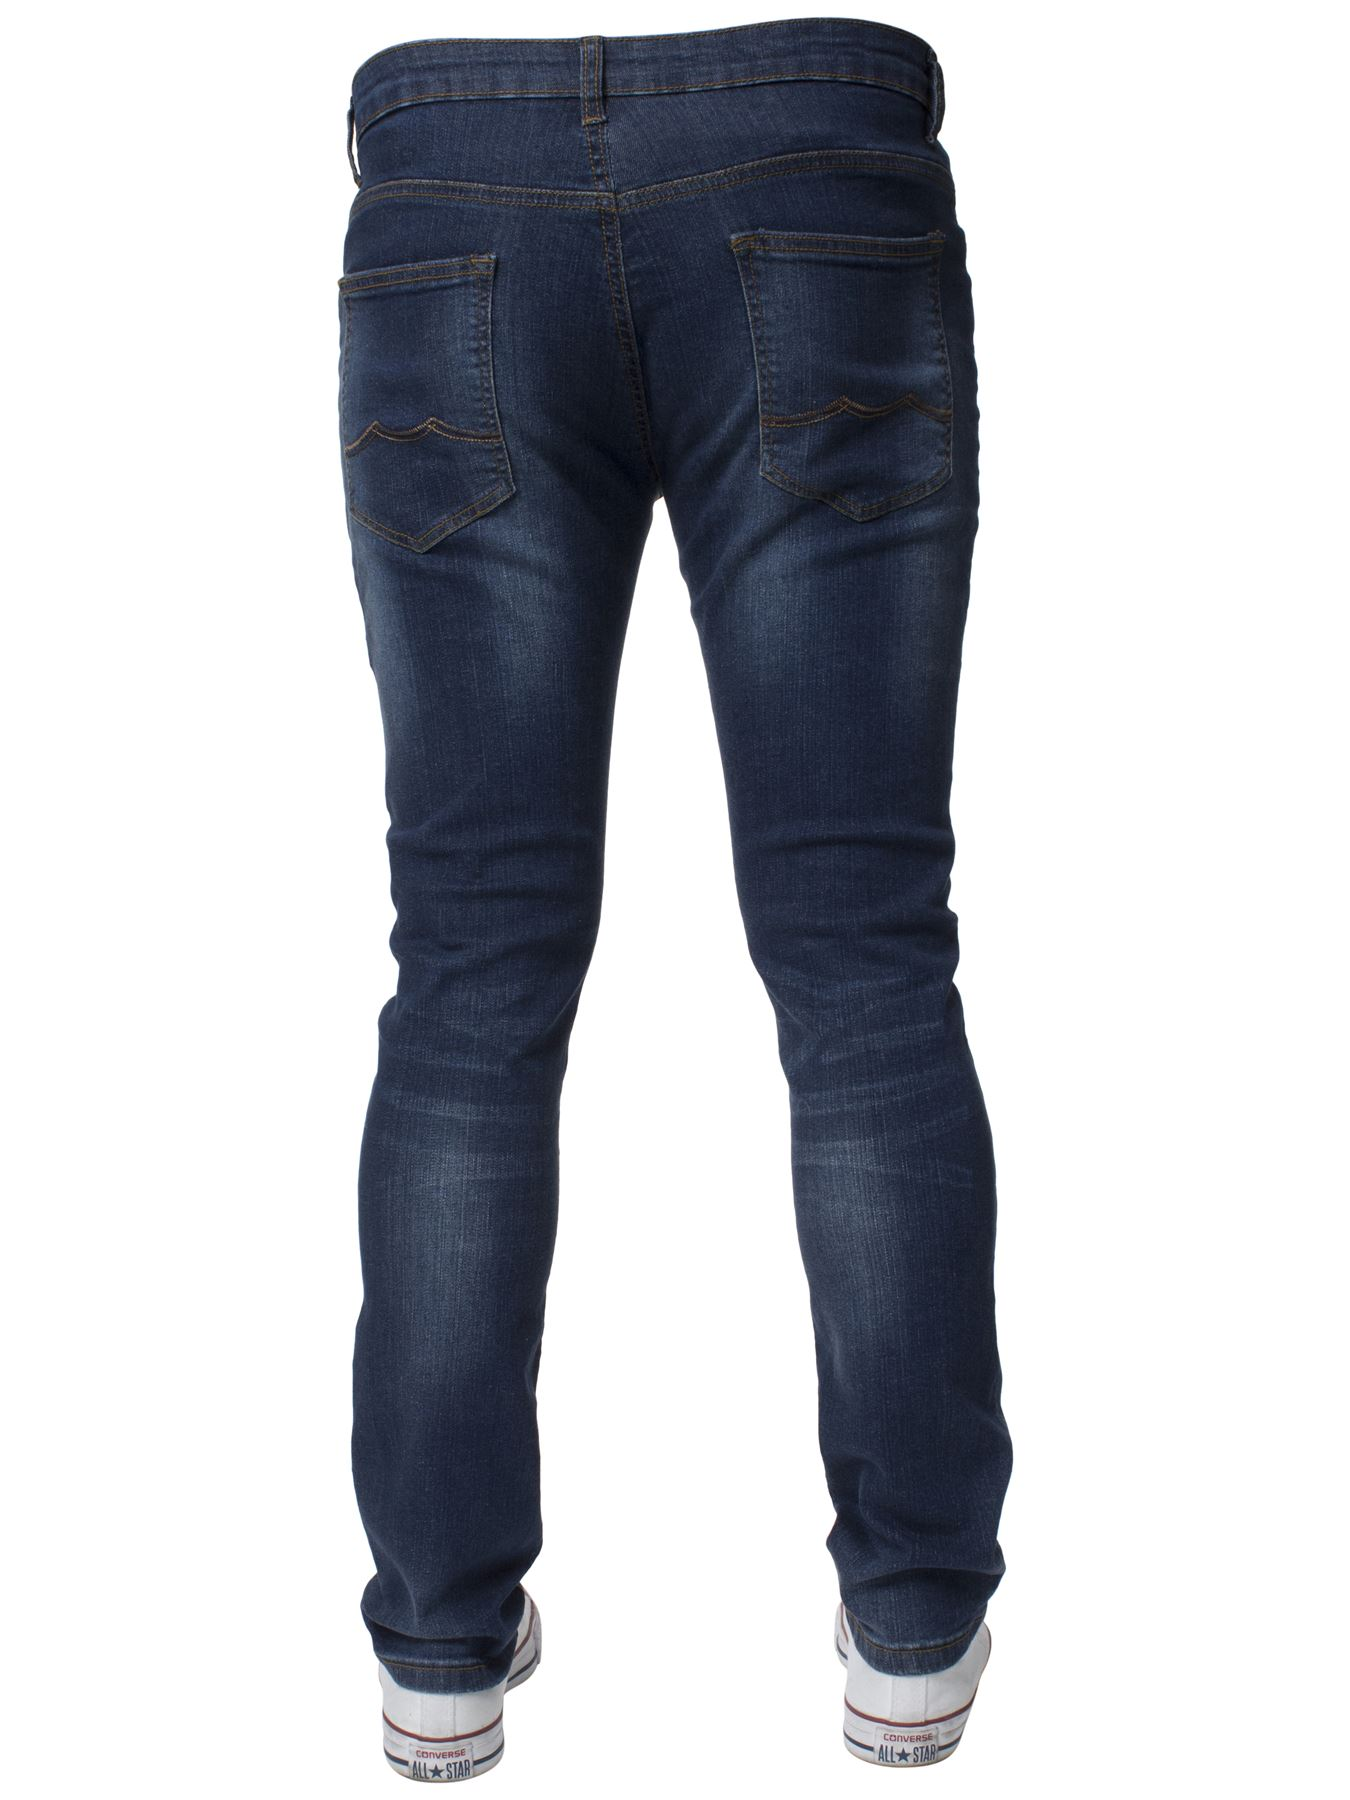 Kruze-Mens-Skinny-Stretch-Flex-Denim-Jeans-Slim-Fit-Trouser-Pants-Big-King-Sizes thumbnail 12